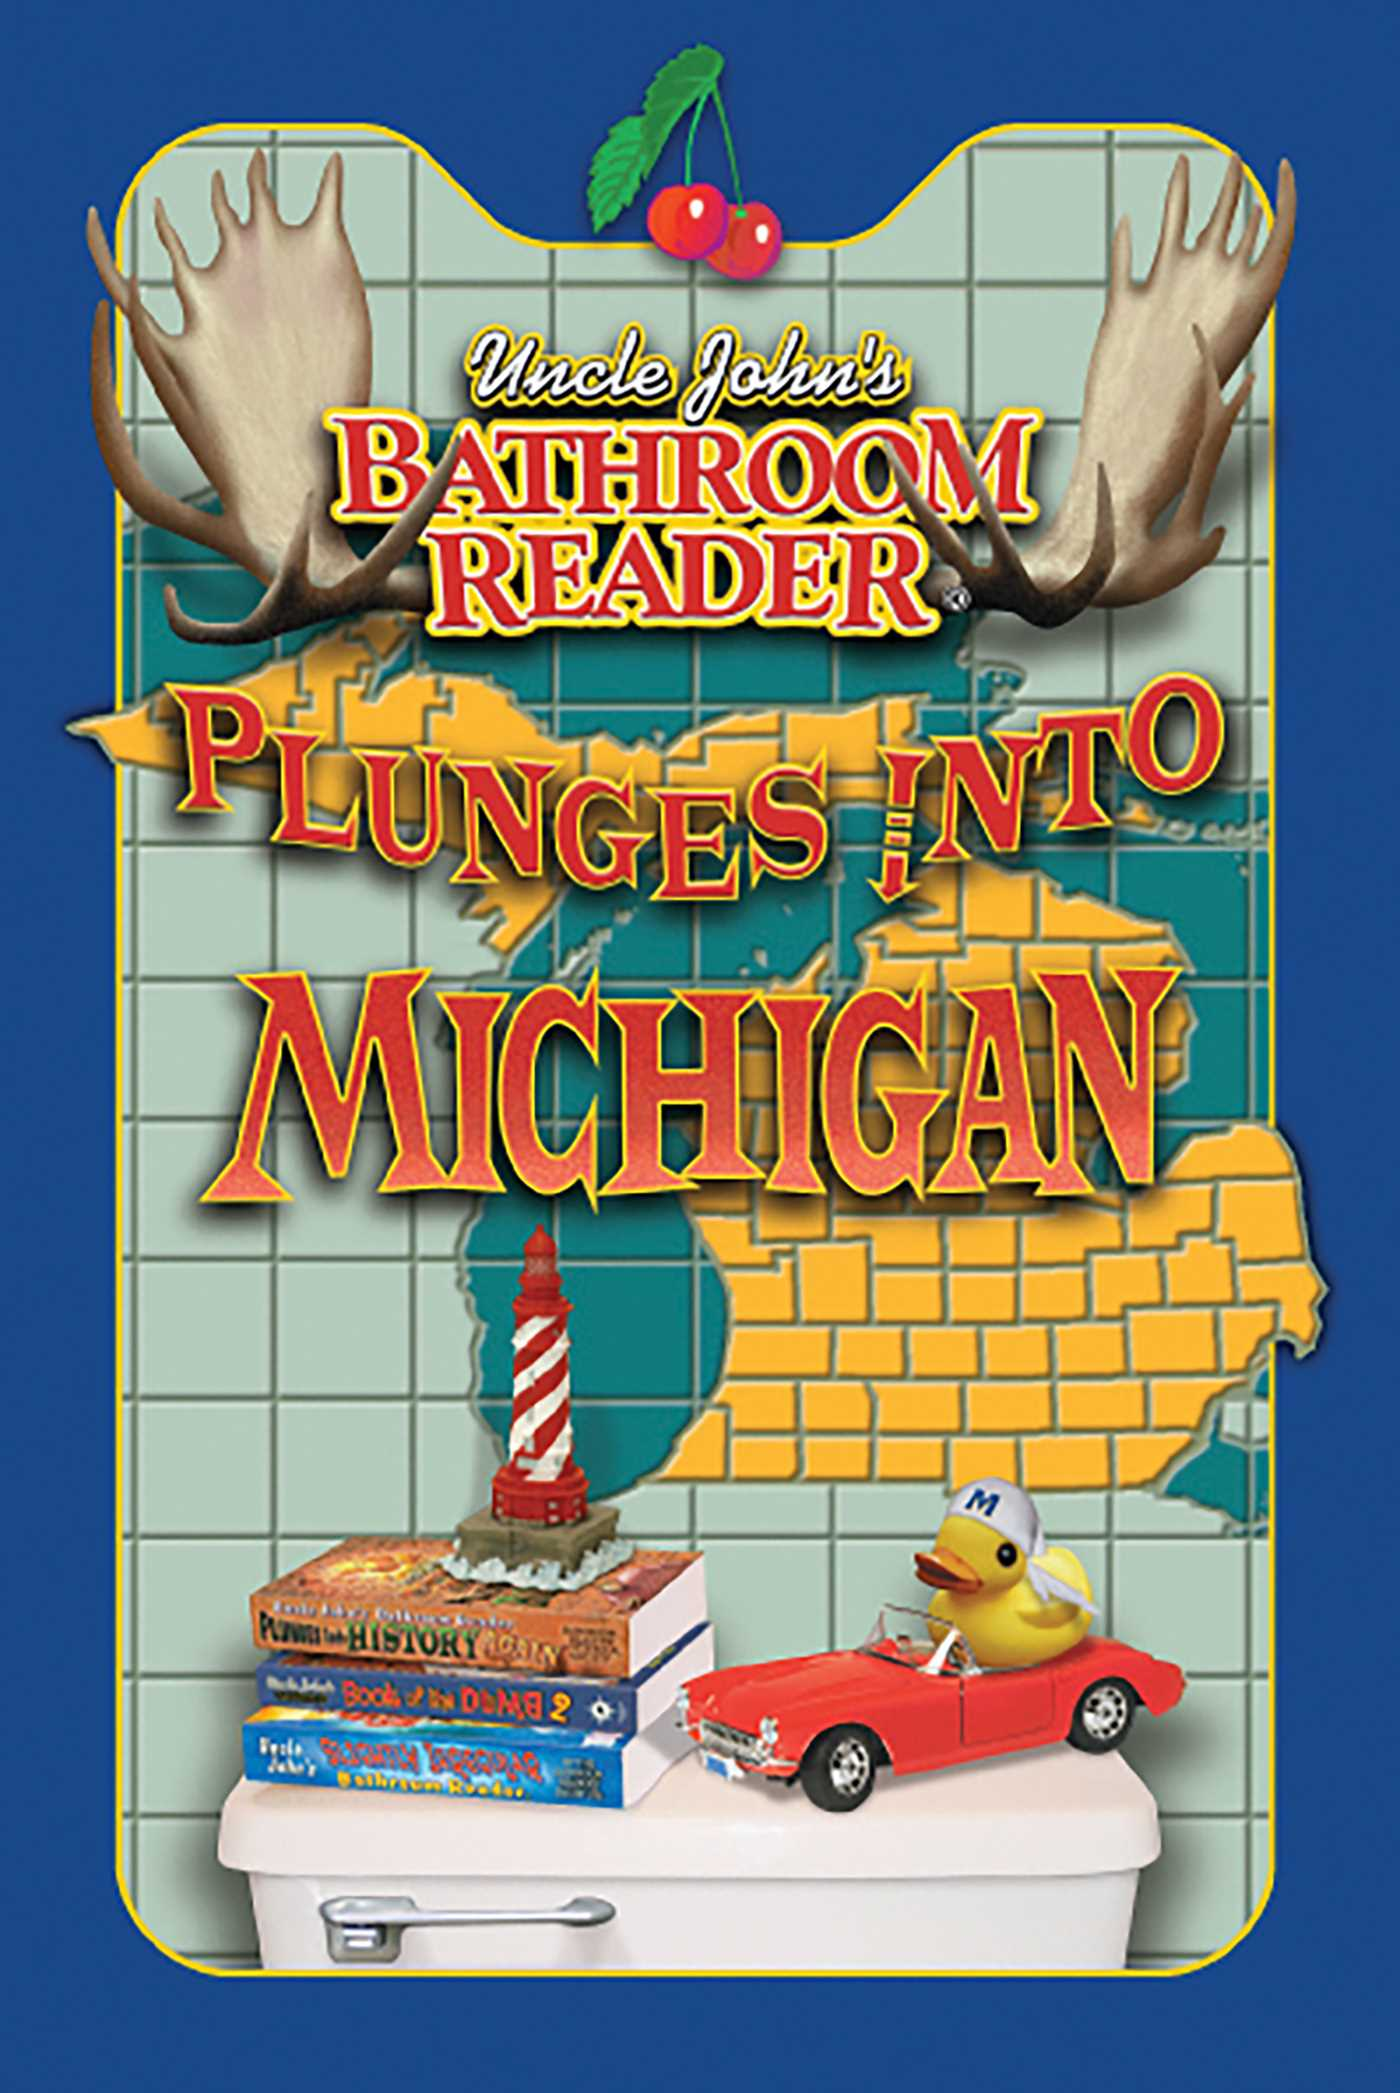 Uncle johns bathroom reader plunges into michigan 9781607106197 hr